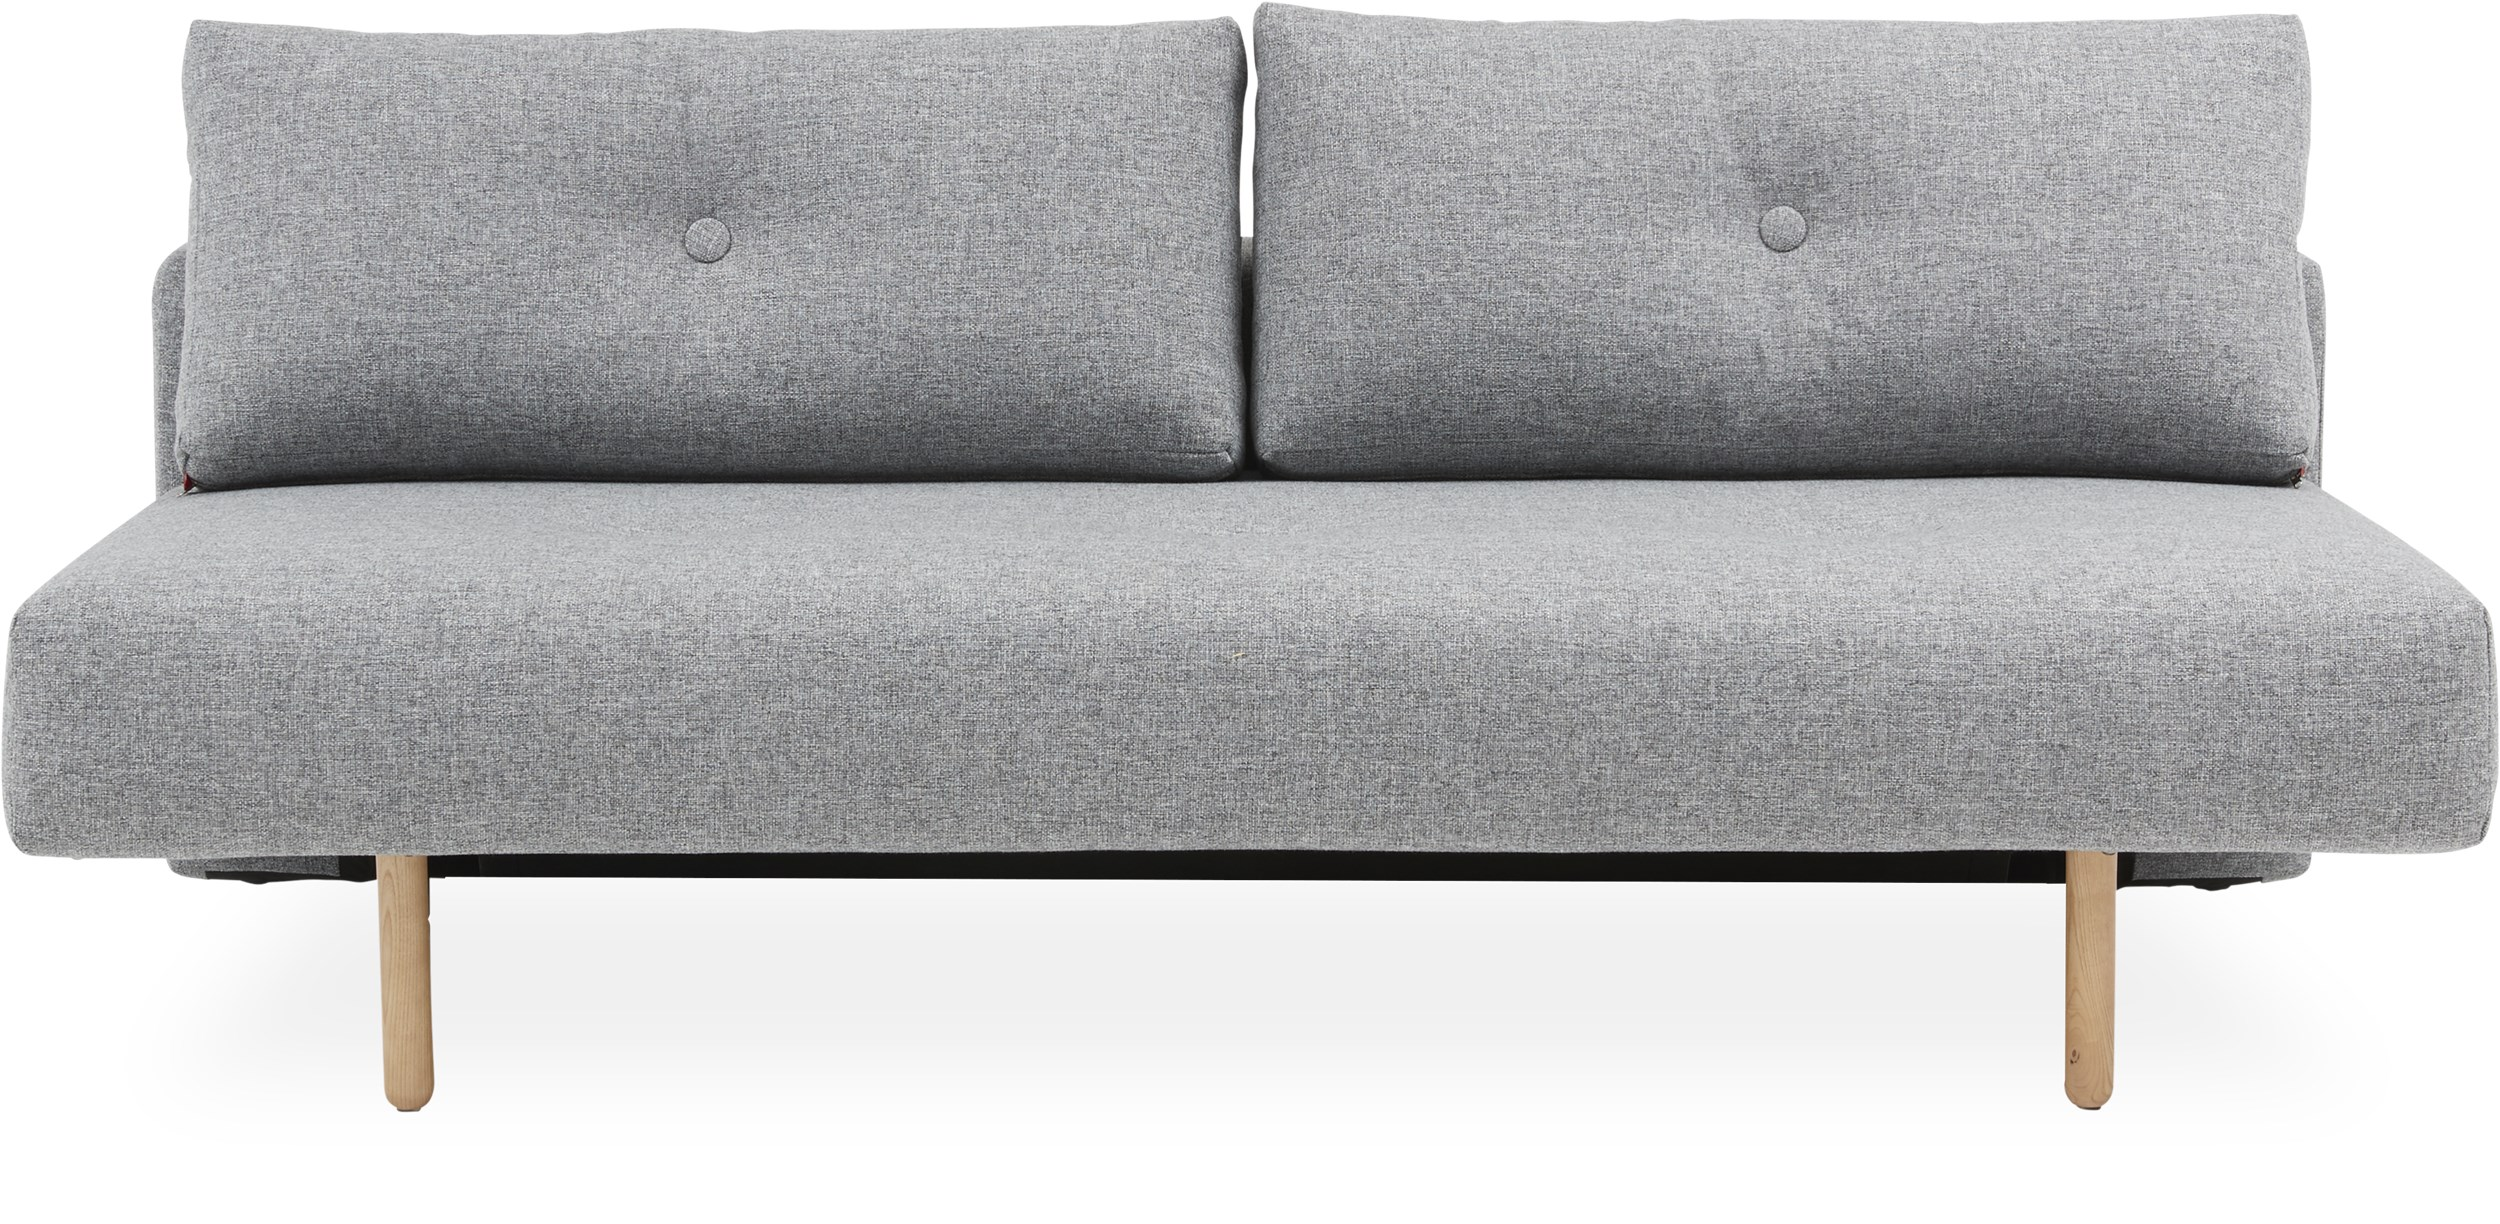 Innovation Living - Thora luxus Sovesofa - Twist 565 Granite, pocketspring/hypersoft skummadras og stem ben i lyst træ